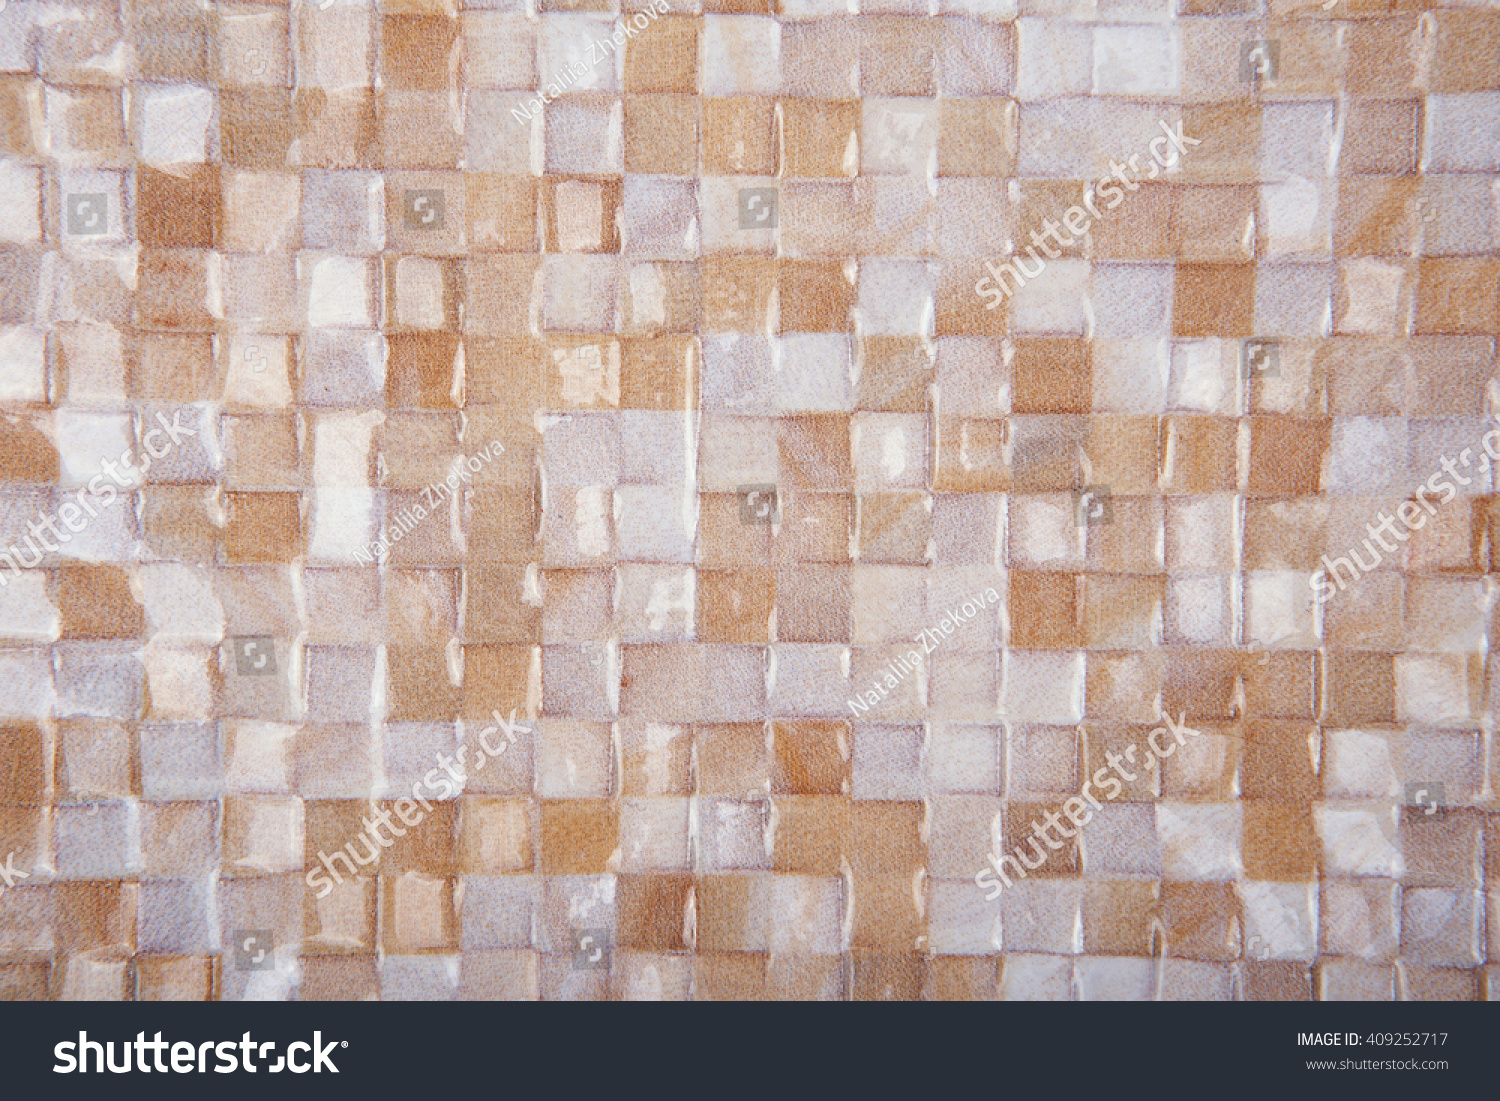 Mosaic Tiles Texture Background Classic Ceramics Stock Photo ...